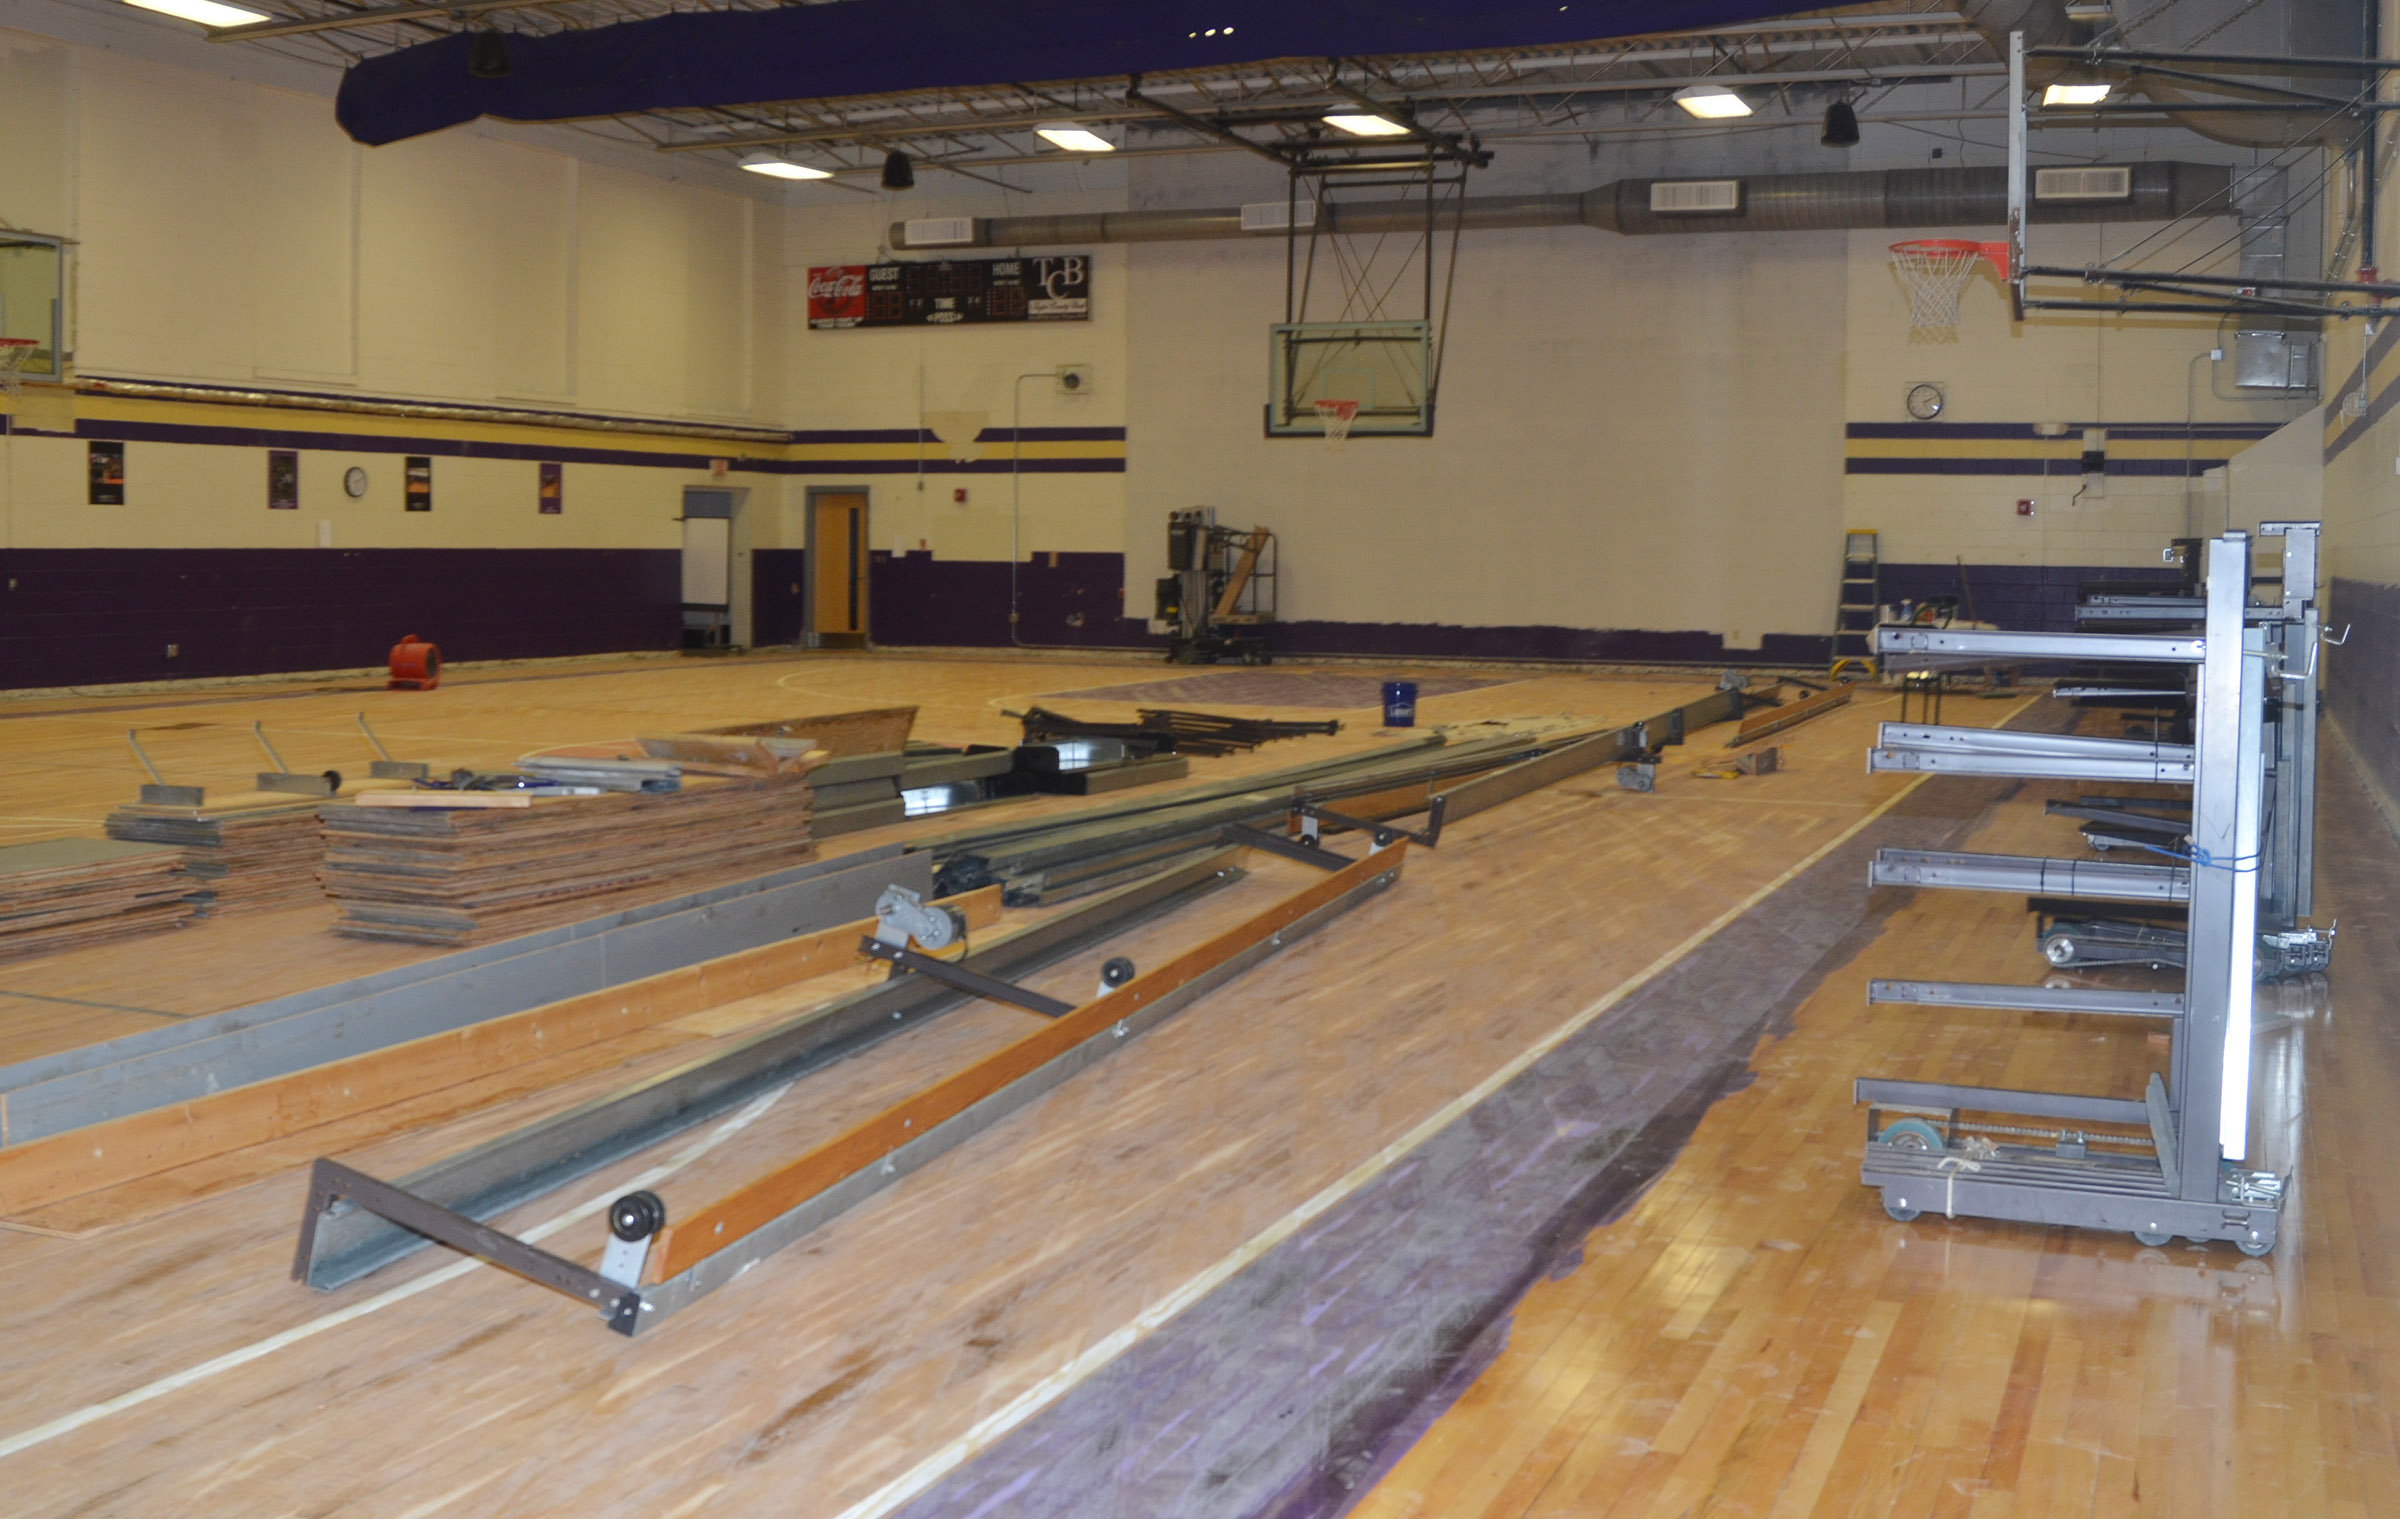 Work has begun on installing new bleachers in the CES gymnasium.